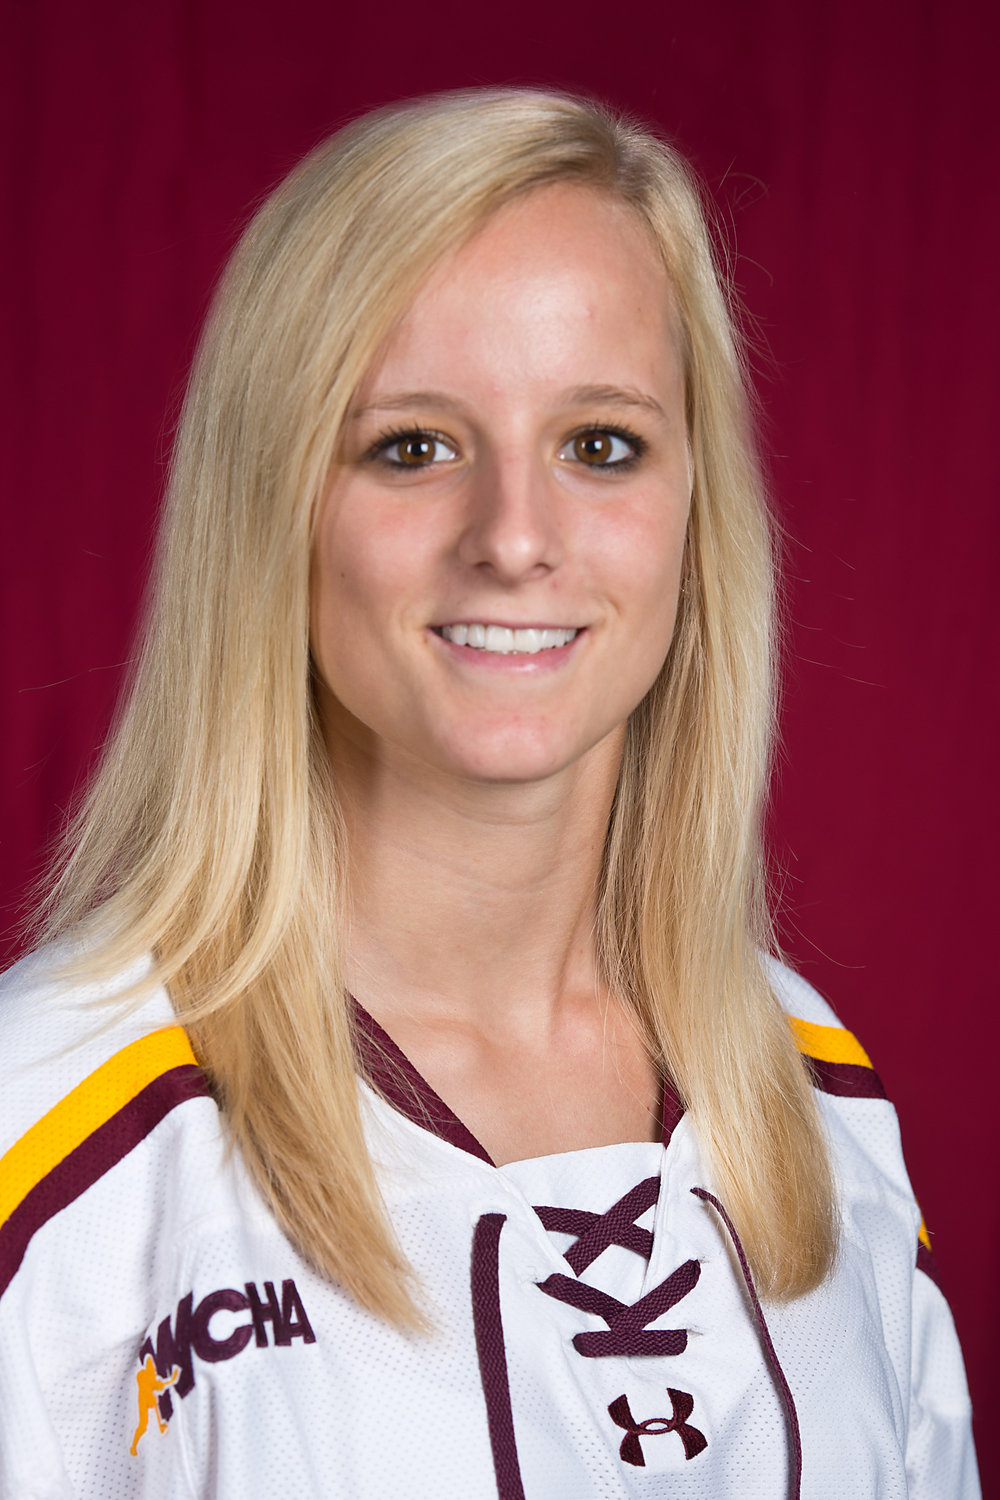 Lara Stalder Photo Courtesy of UMD Athletics